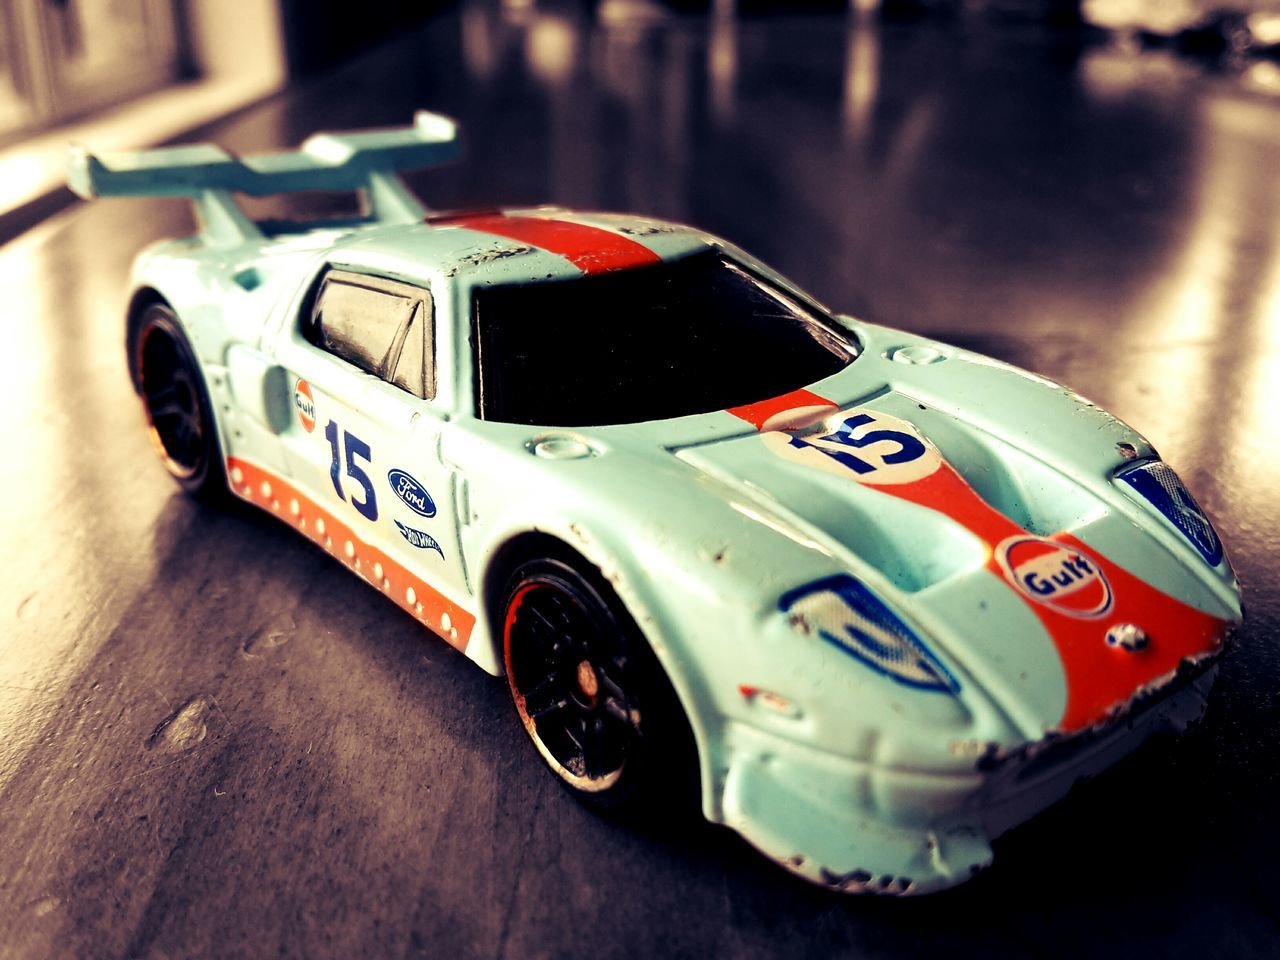 Auto Racing Racecar Home Is Where The Art Is Indoors  Check This Out Cheese! Fırst Eyeem Photo EyeEm Best Shots Selective Focus Getting Inspired EyeEm Gallery Personal Perspective No People Simple Photography Taking Photos Car Show